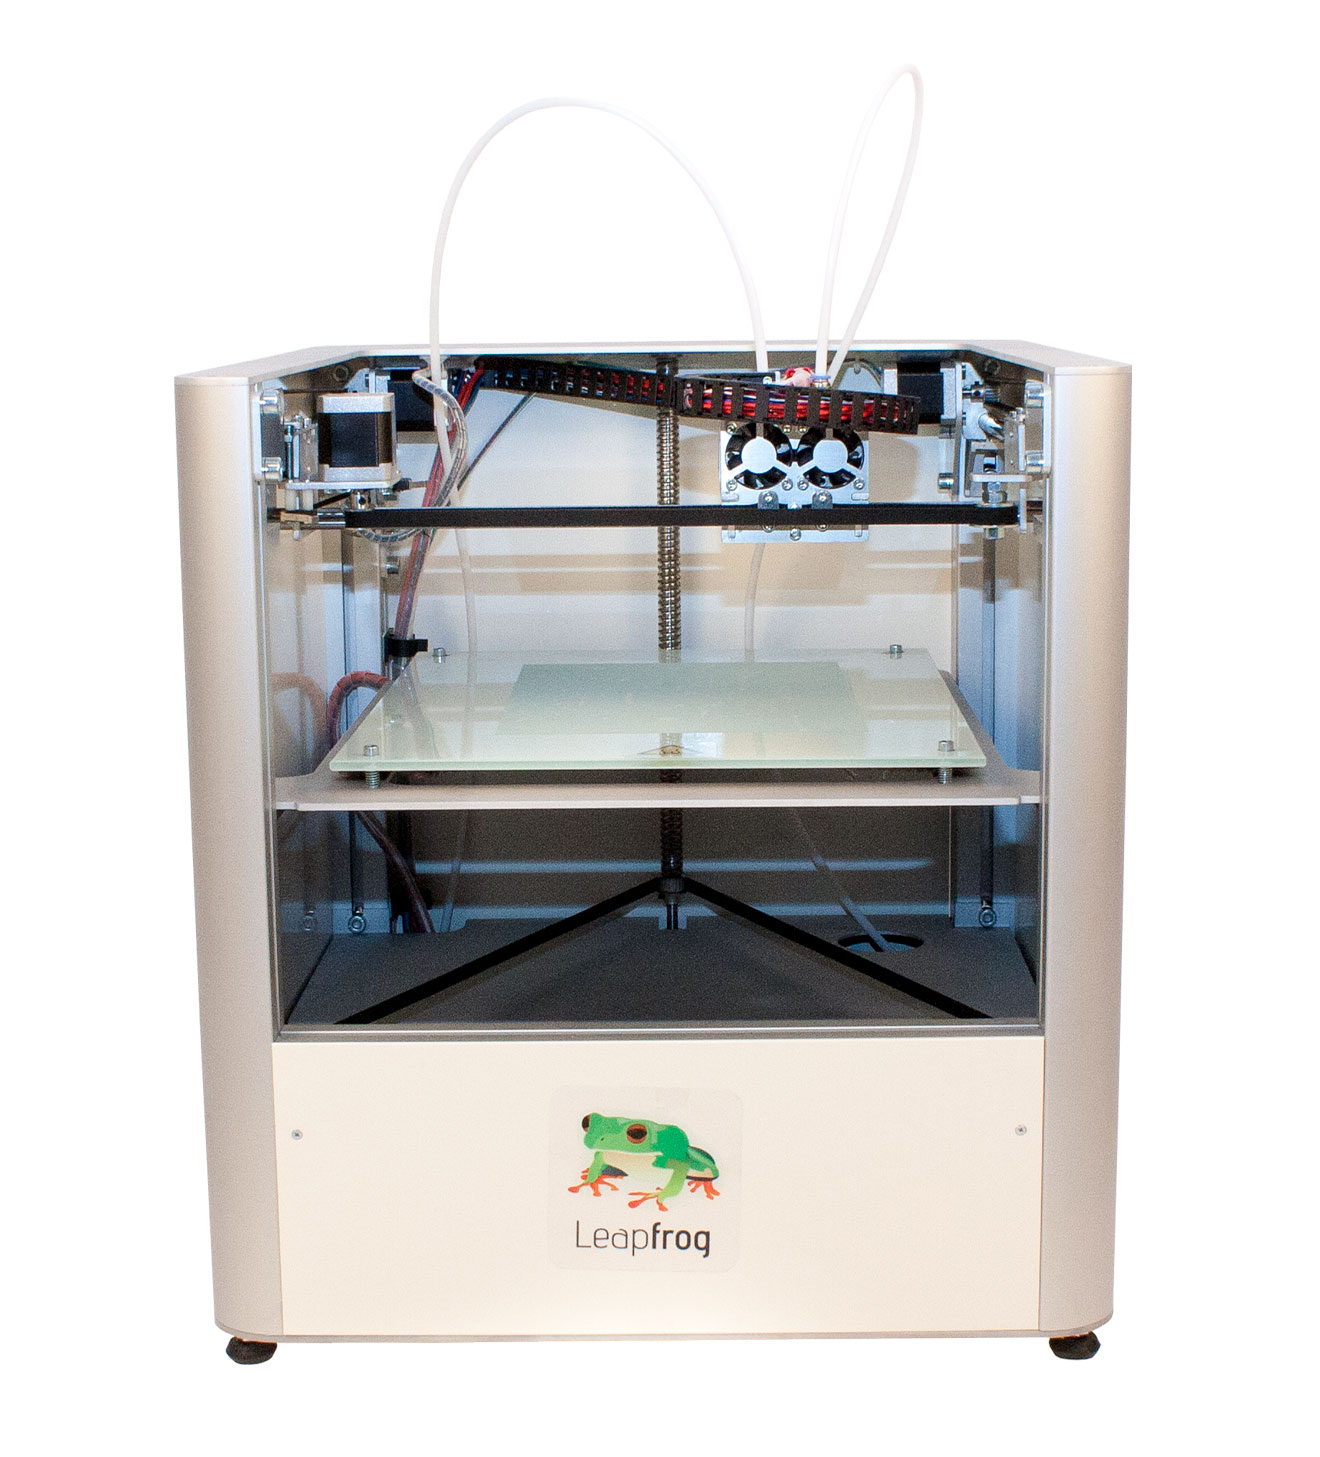 Leapfrog Creatr 3D-printer